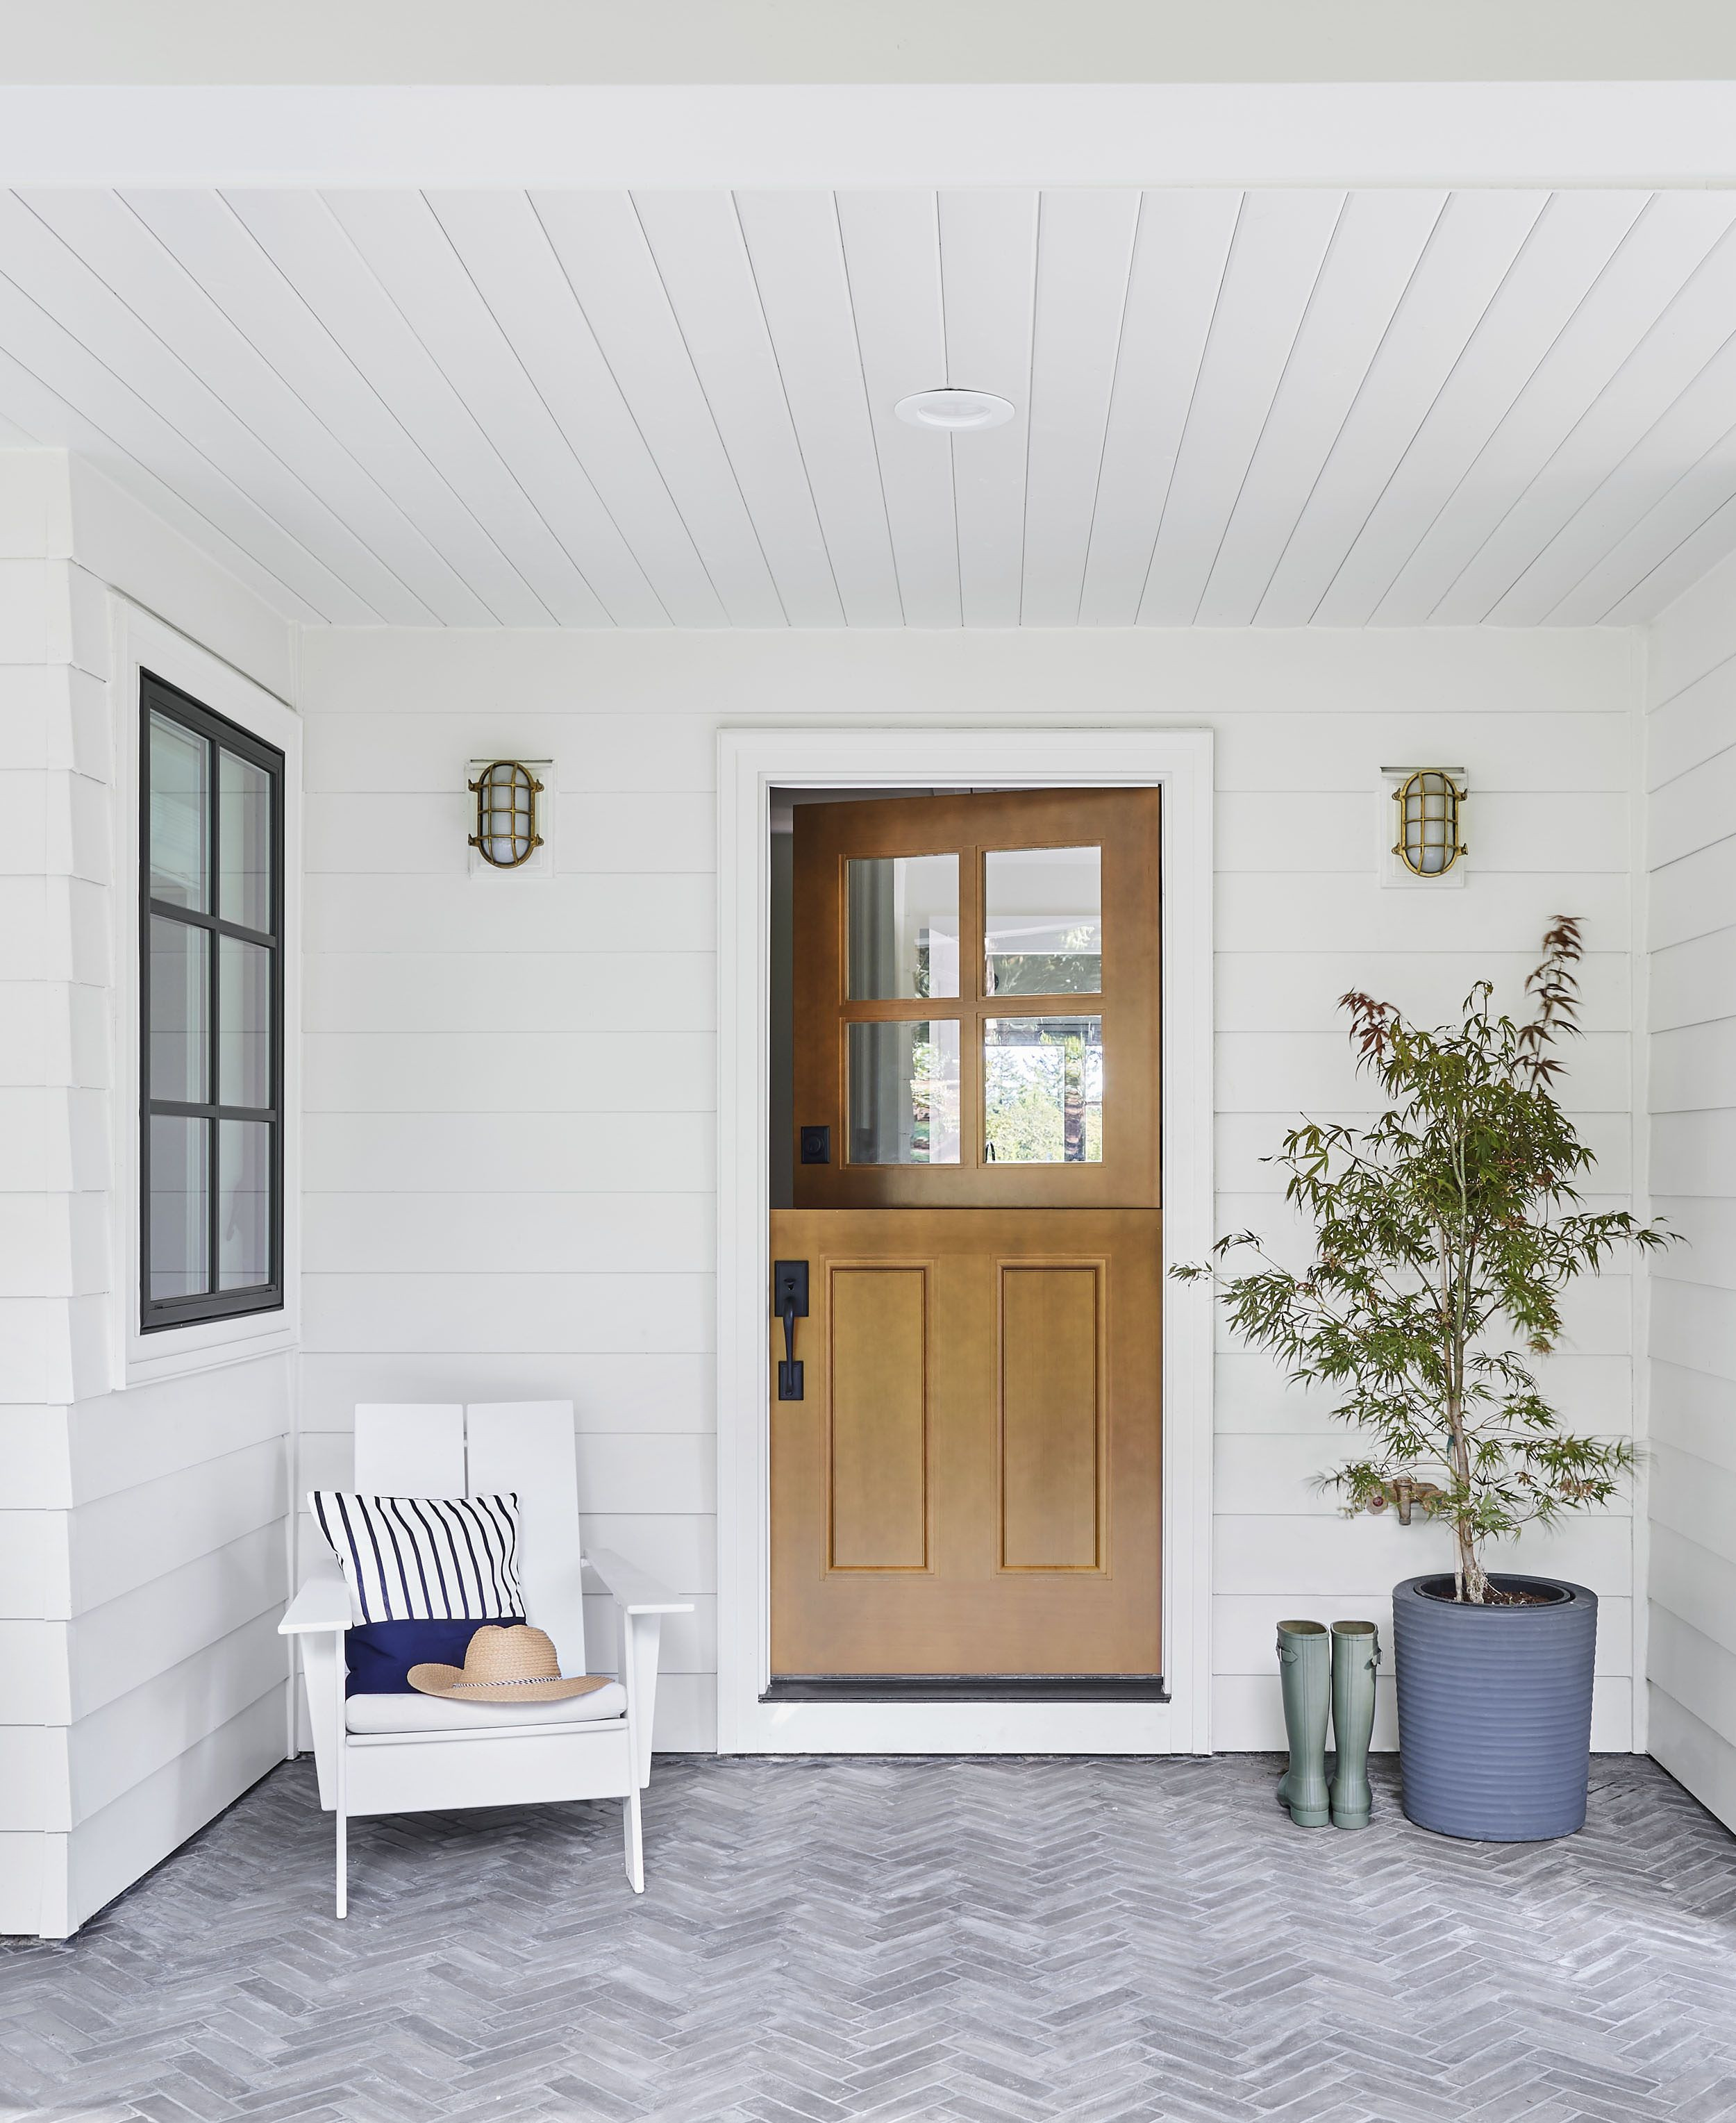 Best ideas about Front Porch Pantry . Save or Pin 8 Steps to Building a Smart Organized Pantry & Mudroom Now.